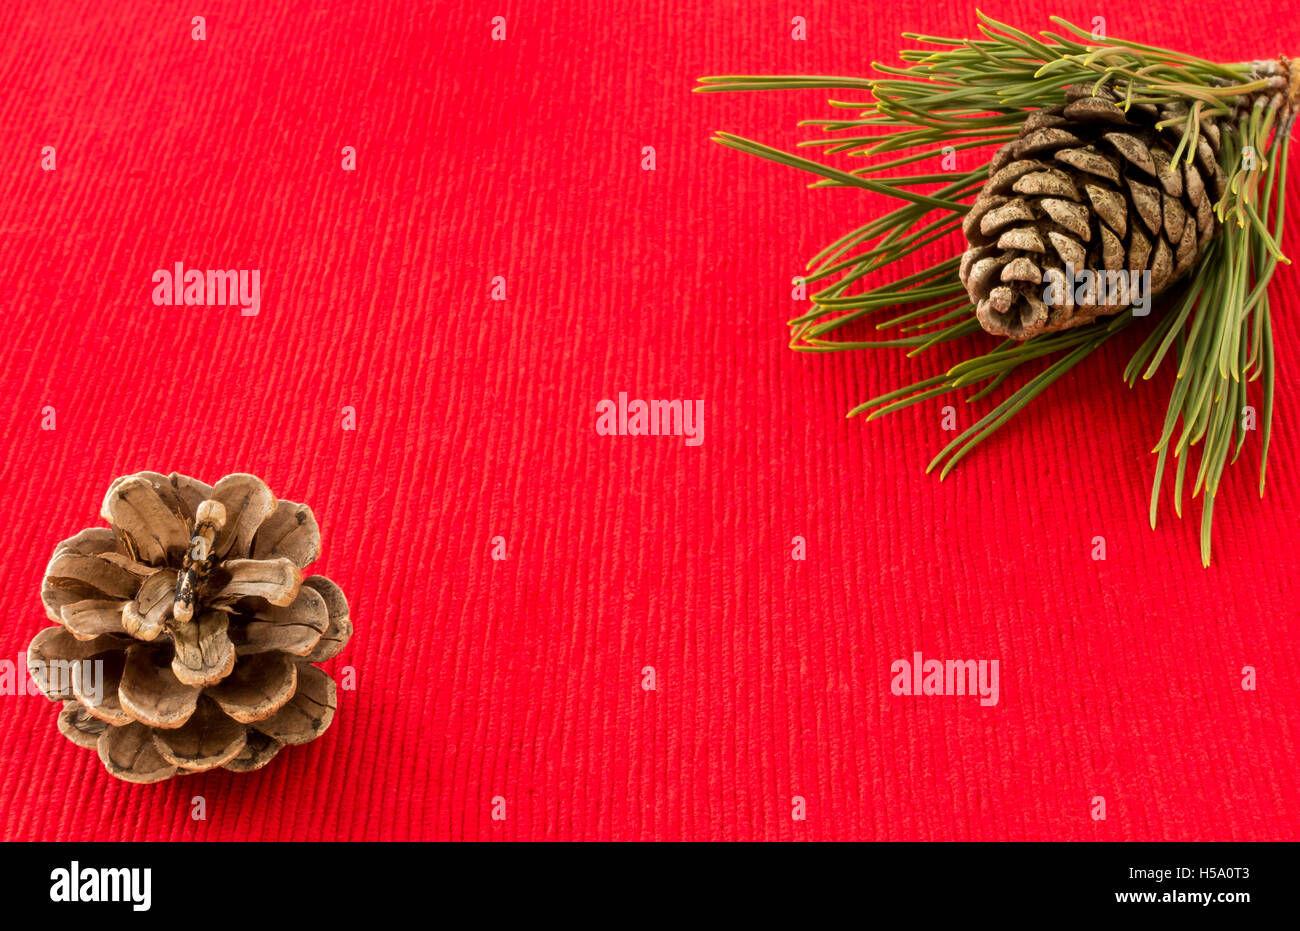 Winter Background with Pine Cones and Pine Tree Twig - Stock Image